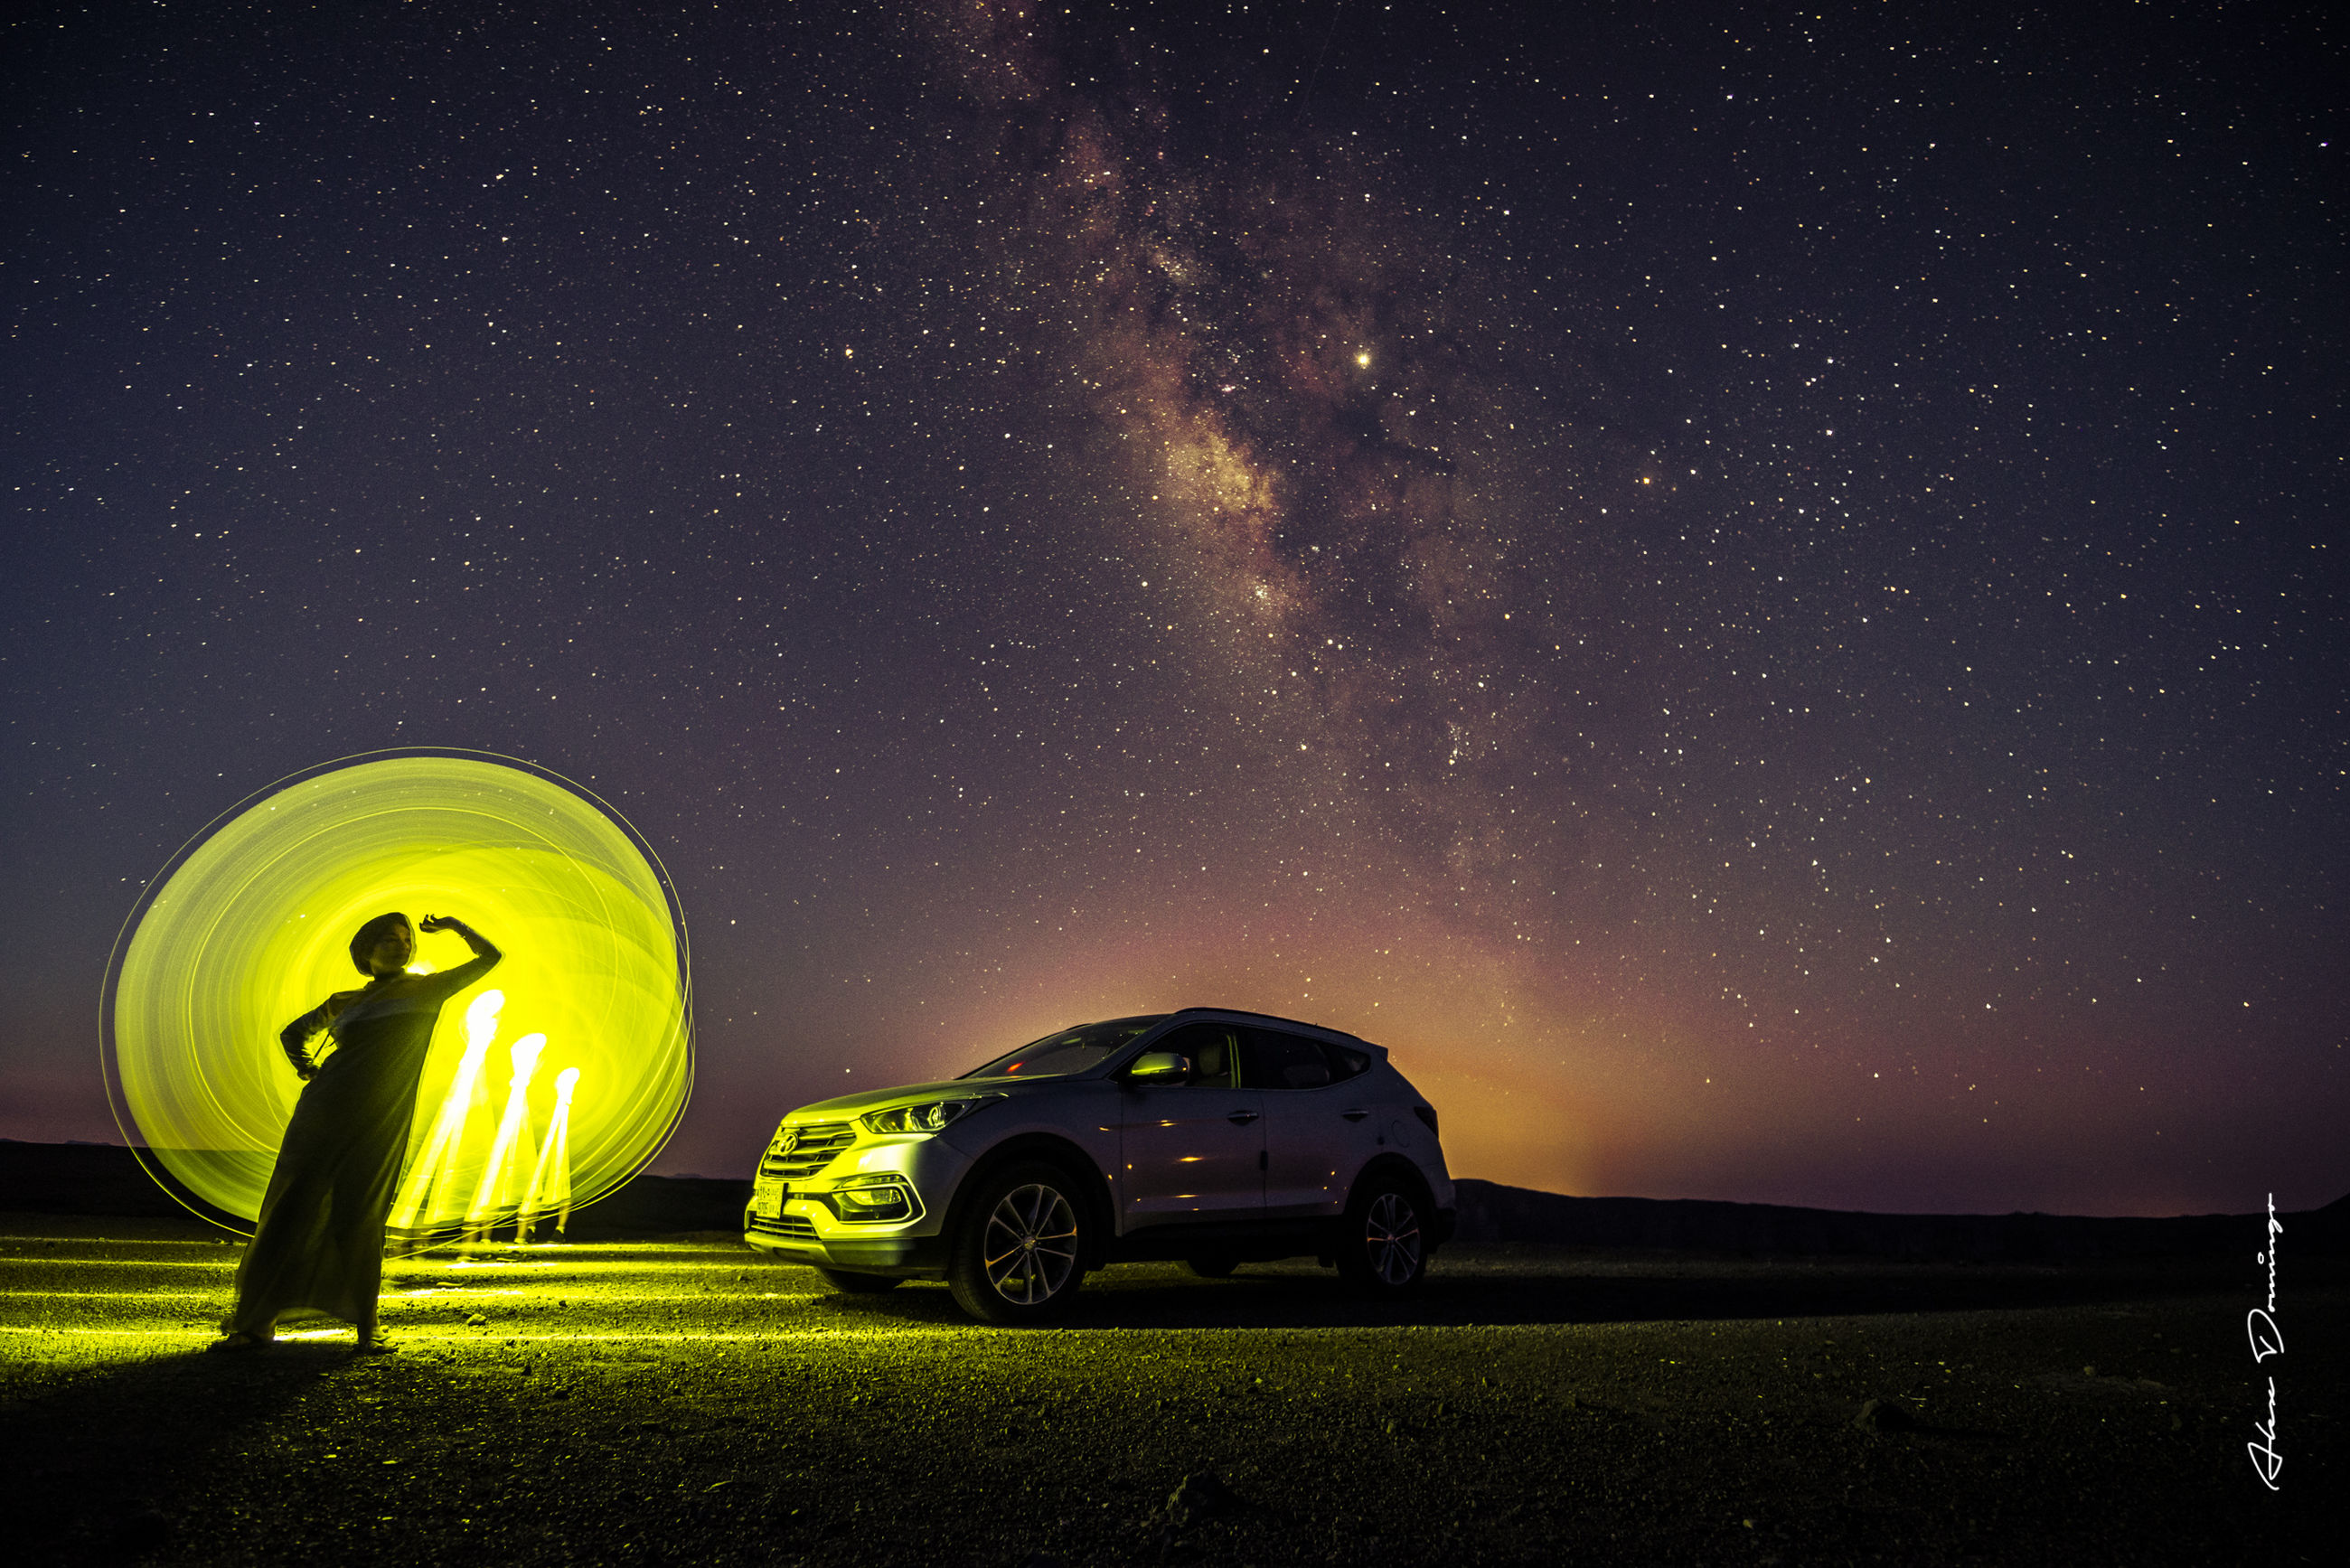 night, mode of transportation, sky, star - space, transportation, motor vehicle, car, field, space, land vehicle, astronomy, nature, land, scenics - nature, galaxy, beauty in nature, star field, star, one person, constellation